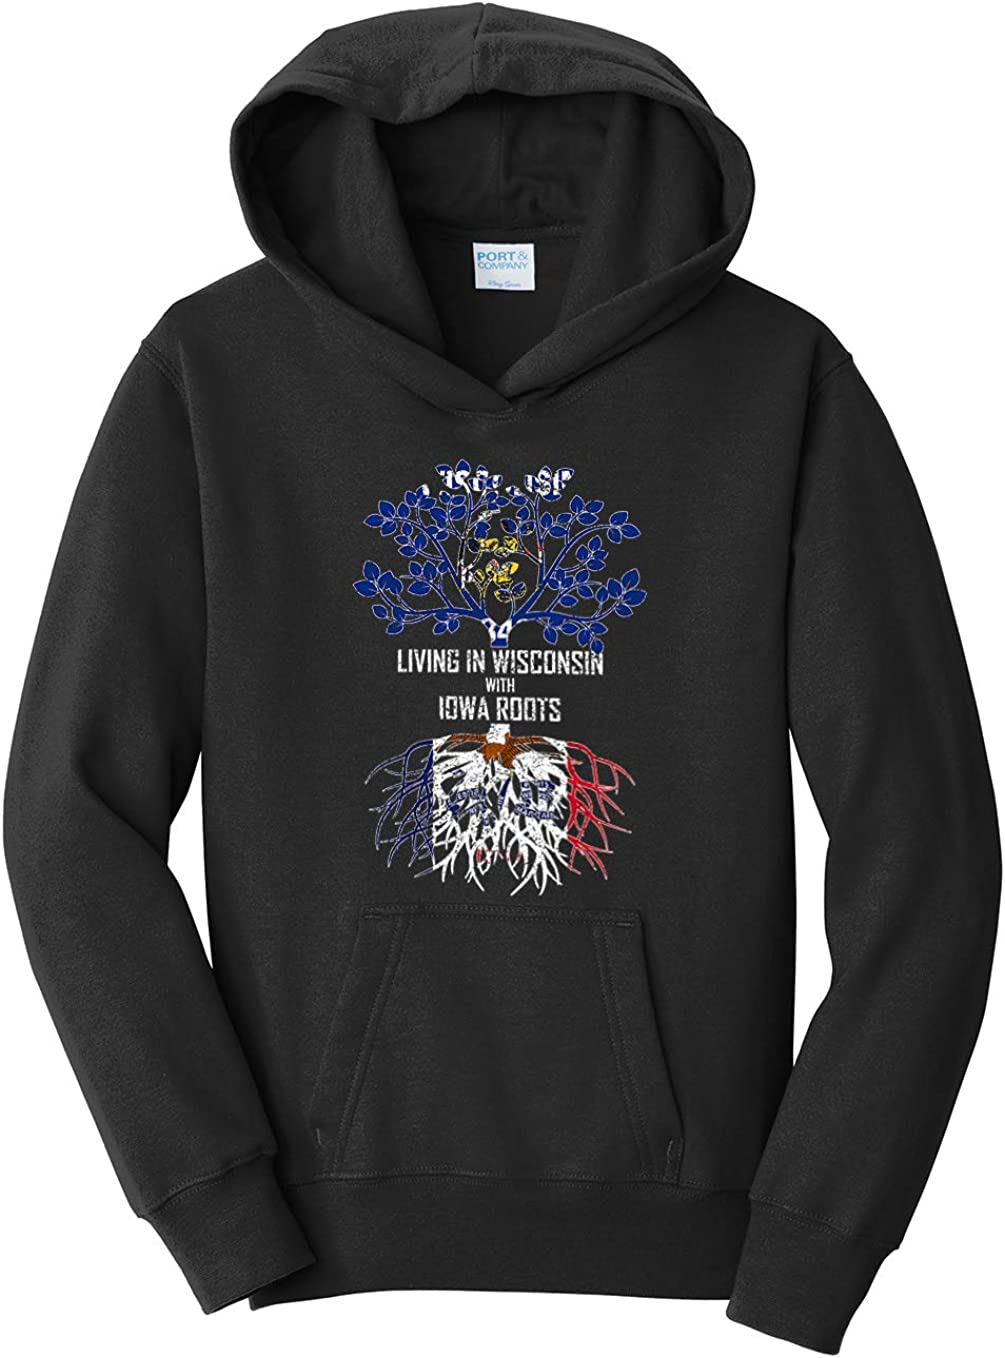 Large Tenacitee Girls Youth Living in Wisconsin with Iowa Roots Hooded Sweatshirt Black